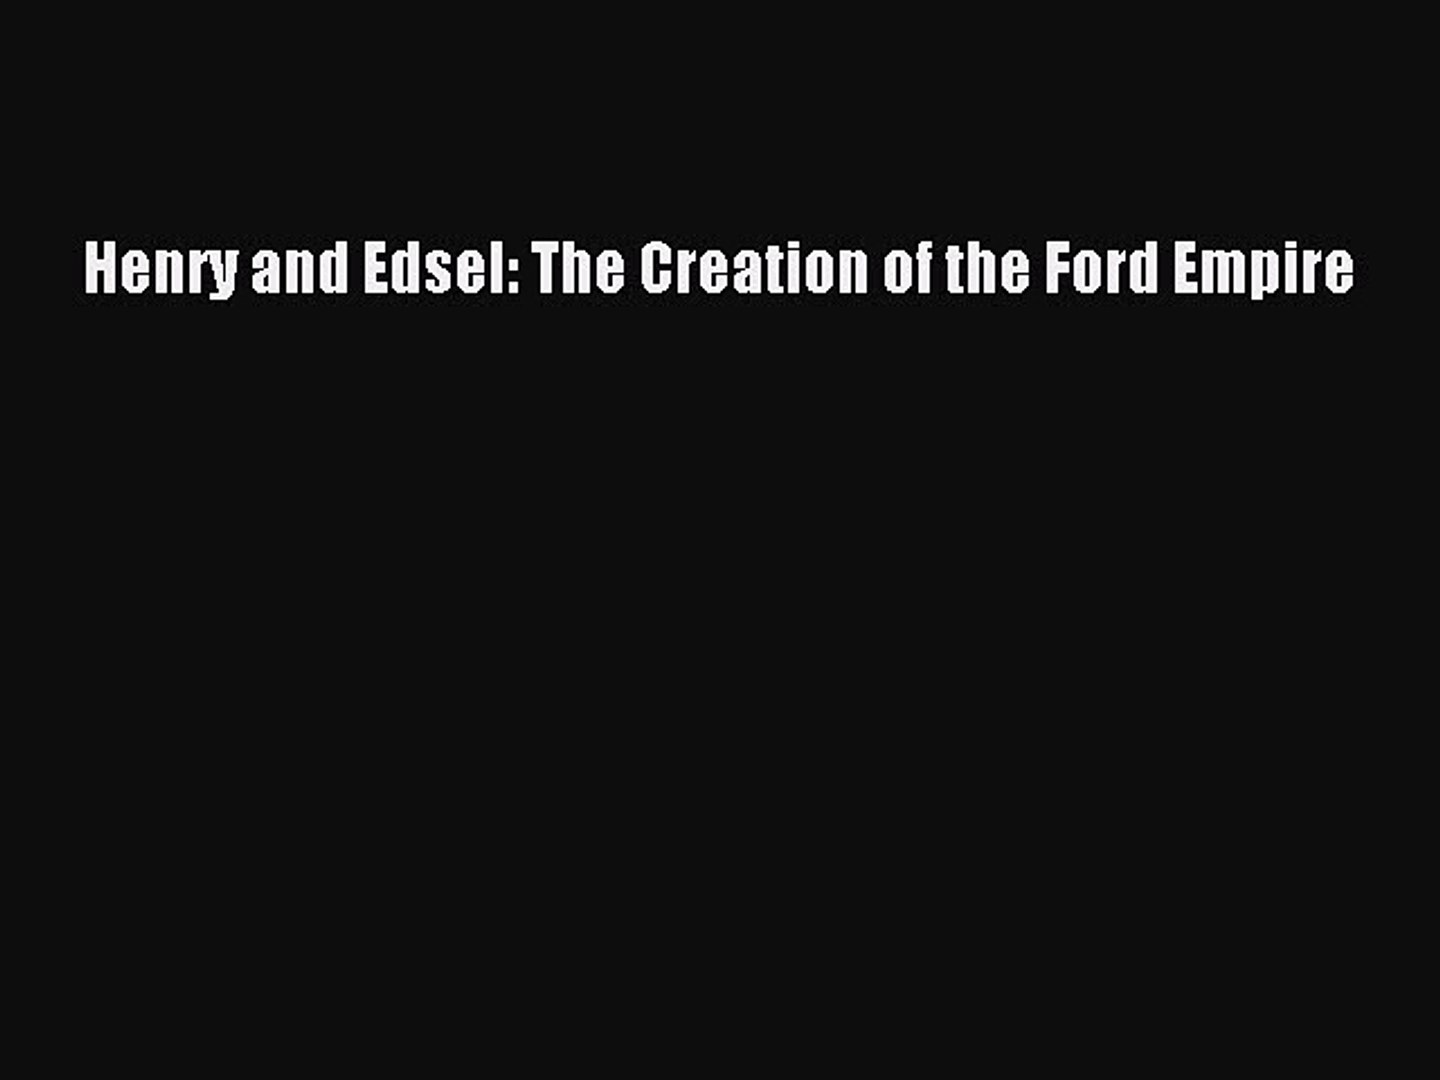 Henry and Edsel: The Creation of the Ford Empire by Richard Bak